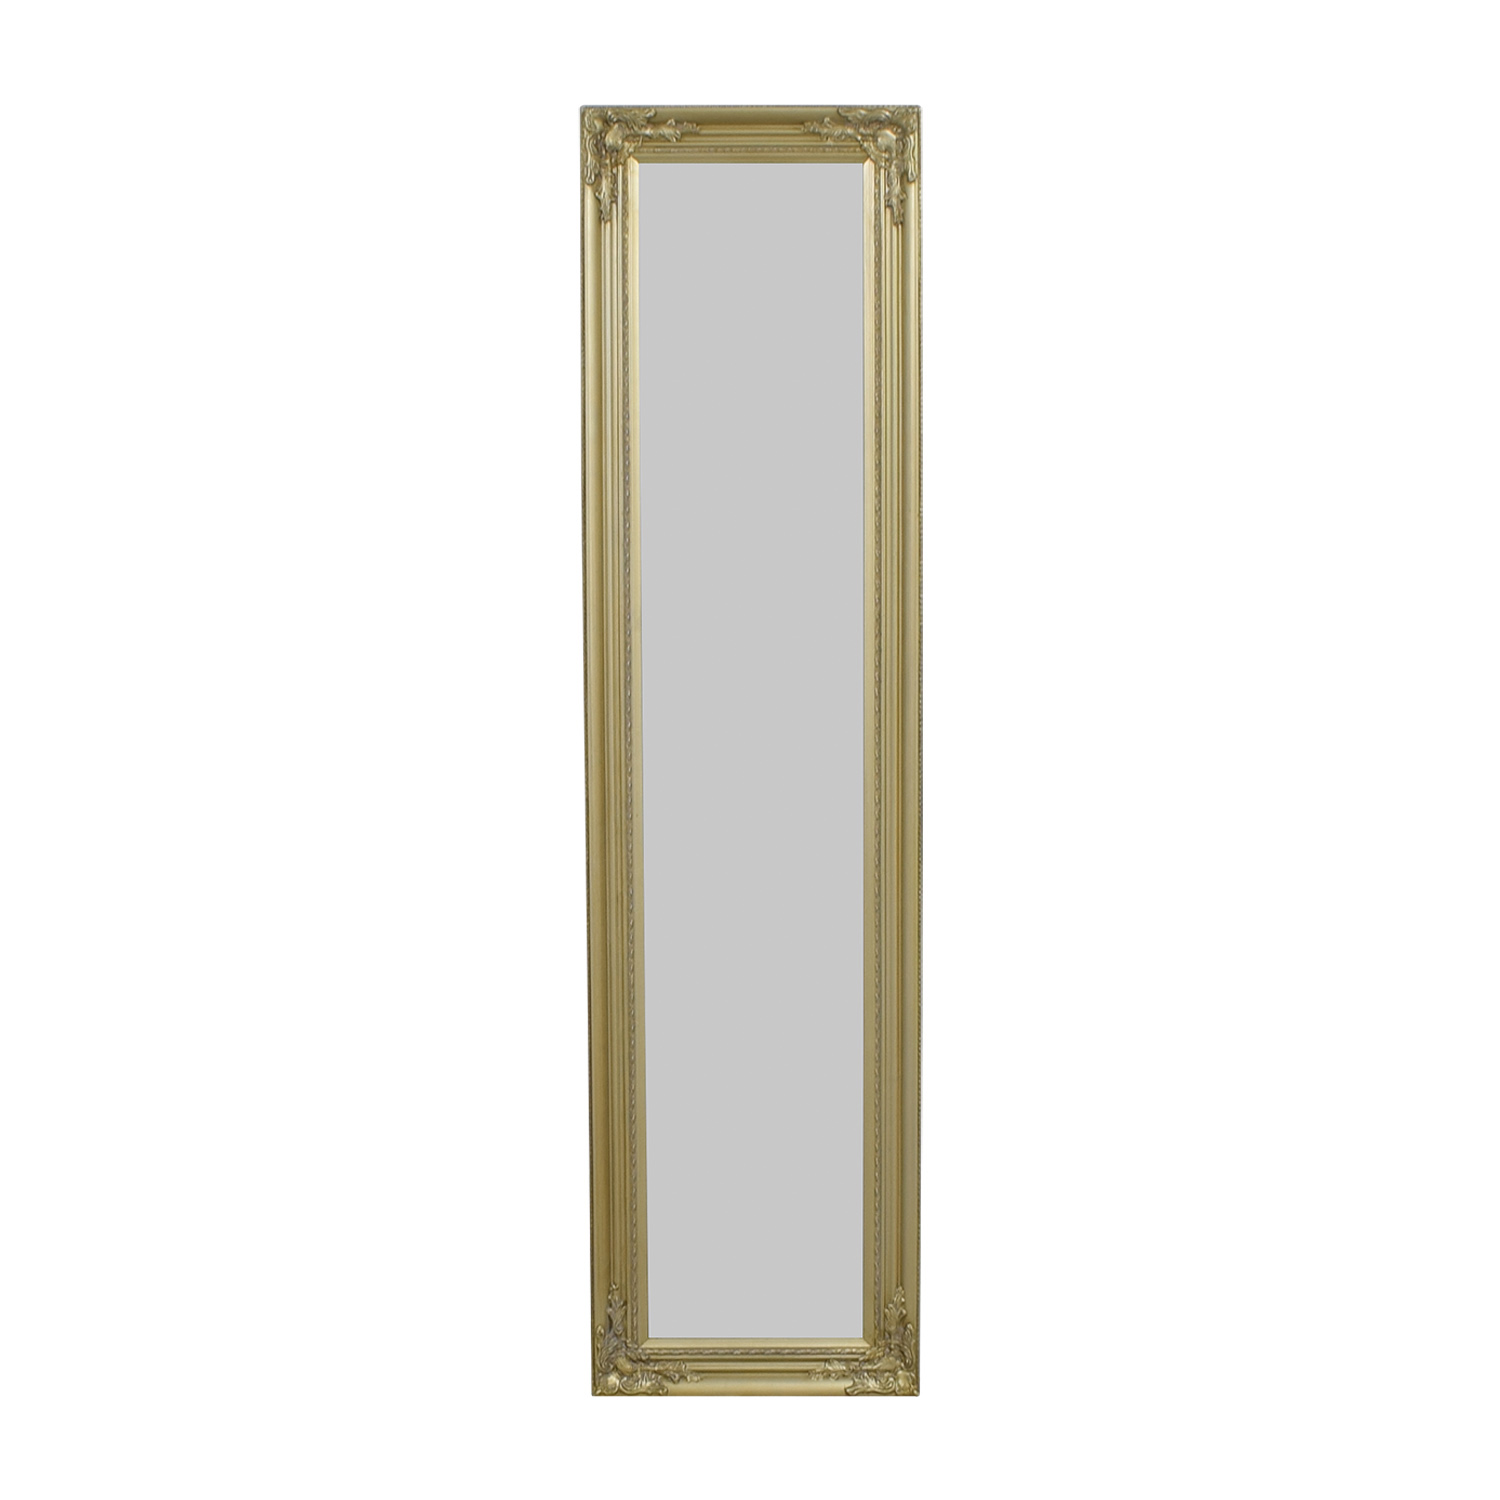 shop Full Length Ornate Gold Mirror online